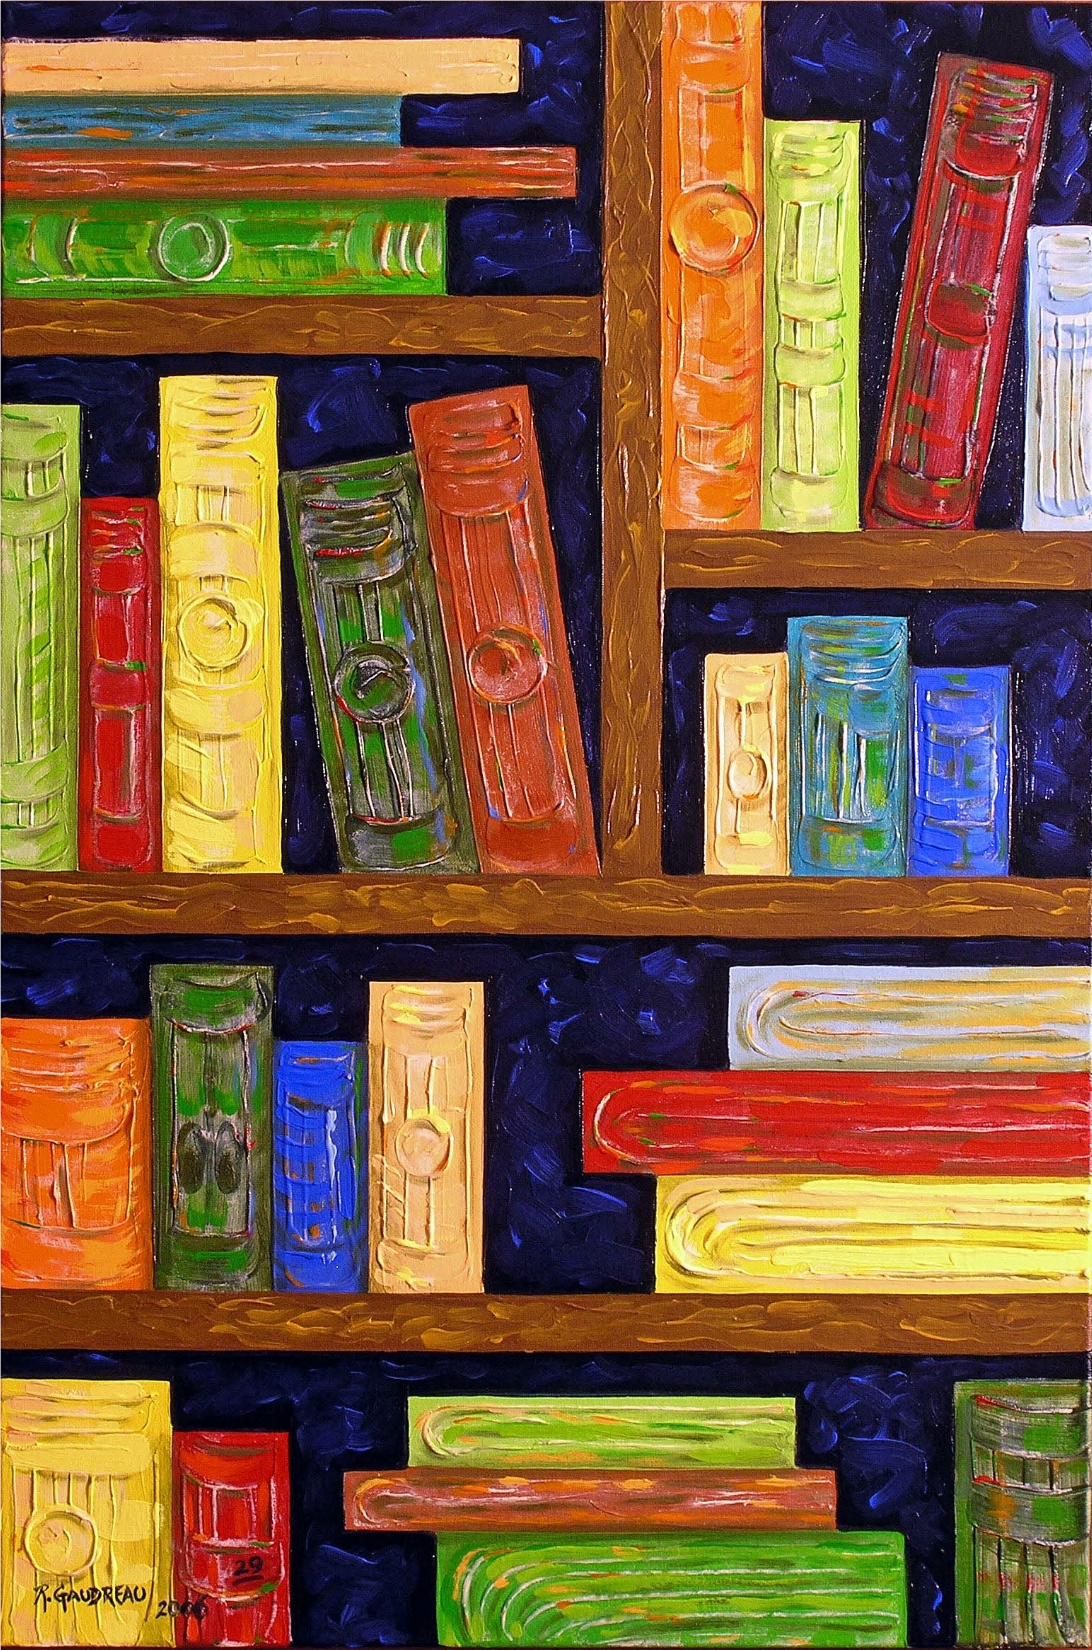 29 Books   2006 oil on canvas 36 x 24 inches